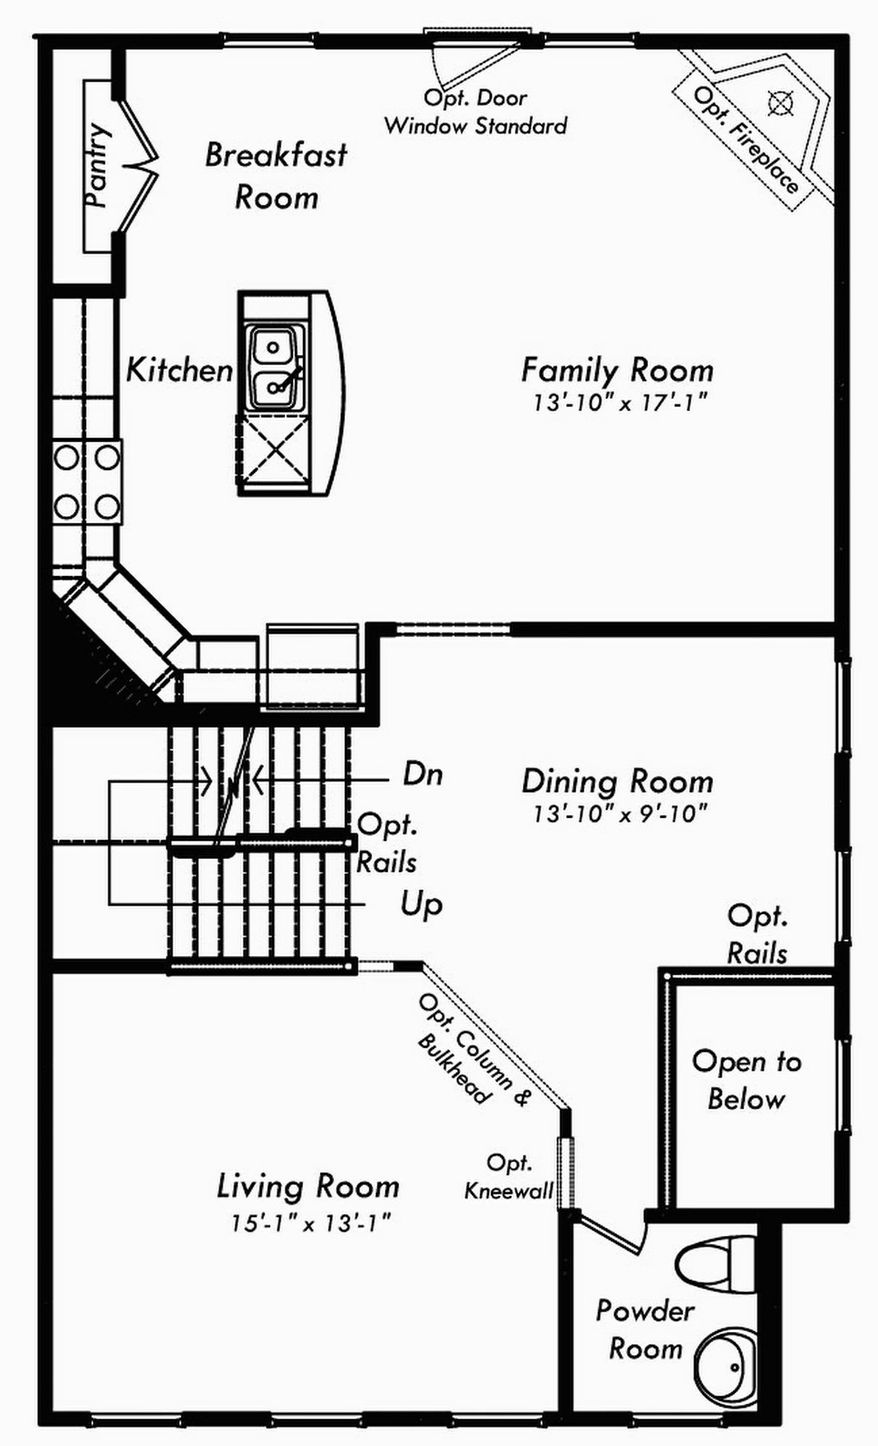 The Astoria model features a center-island kitchen open to the family room on the main level with three bedrooms and two full baths upstairs.